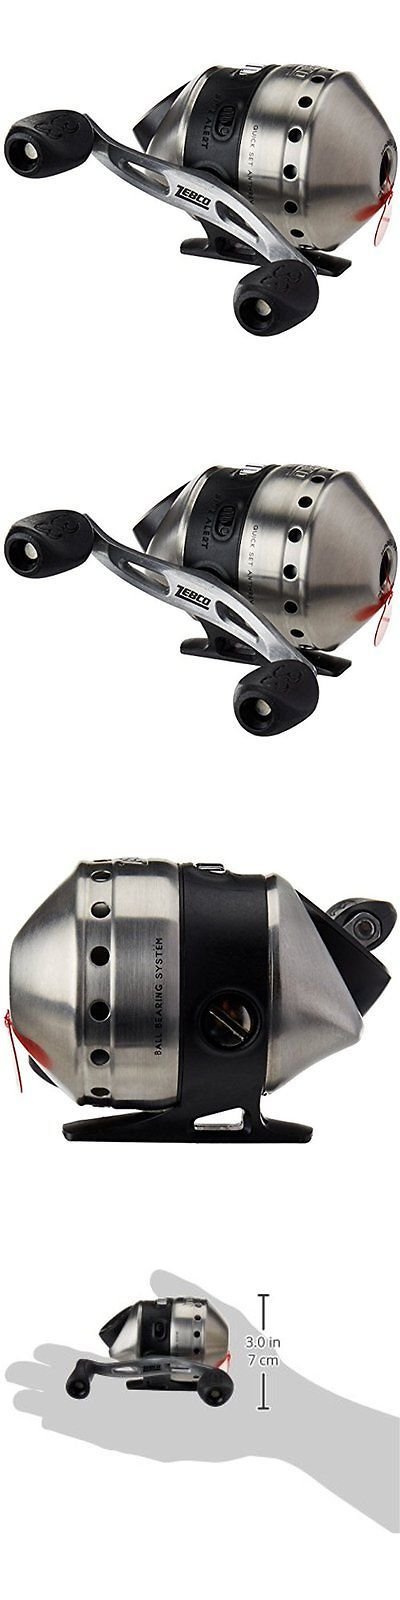 Spincasting Reels 108154: 33 Authentic Spincast Reel New -> BUY IT NOW ONLY: $32.68 on eBay!